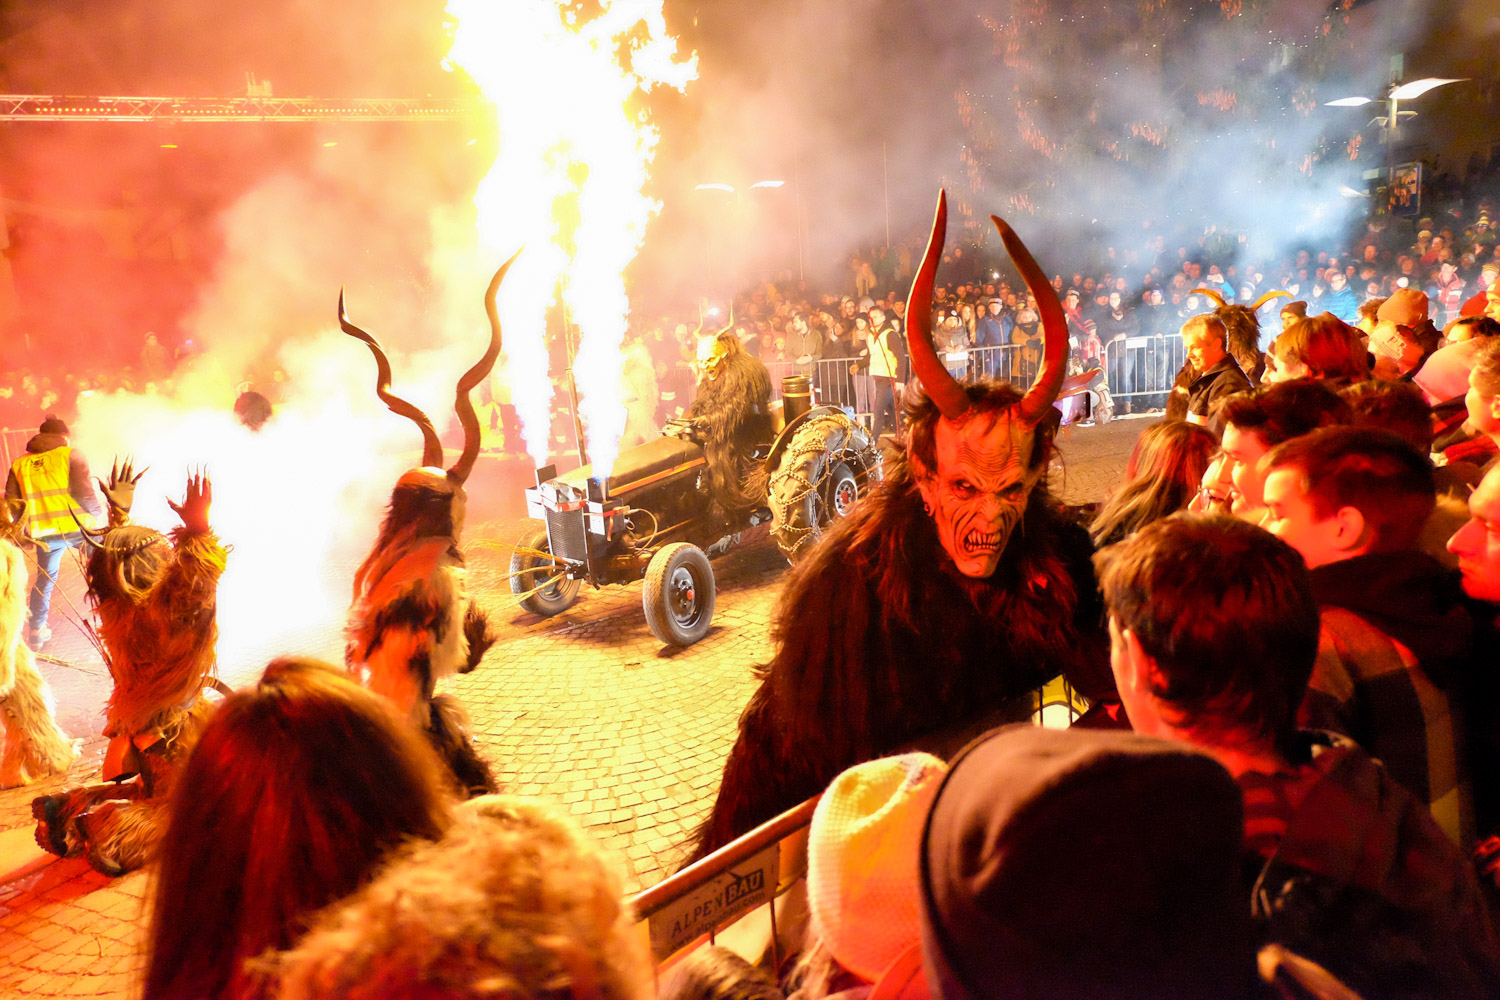 At the Krampus Parade in Natz, Italy.